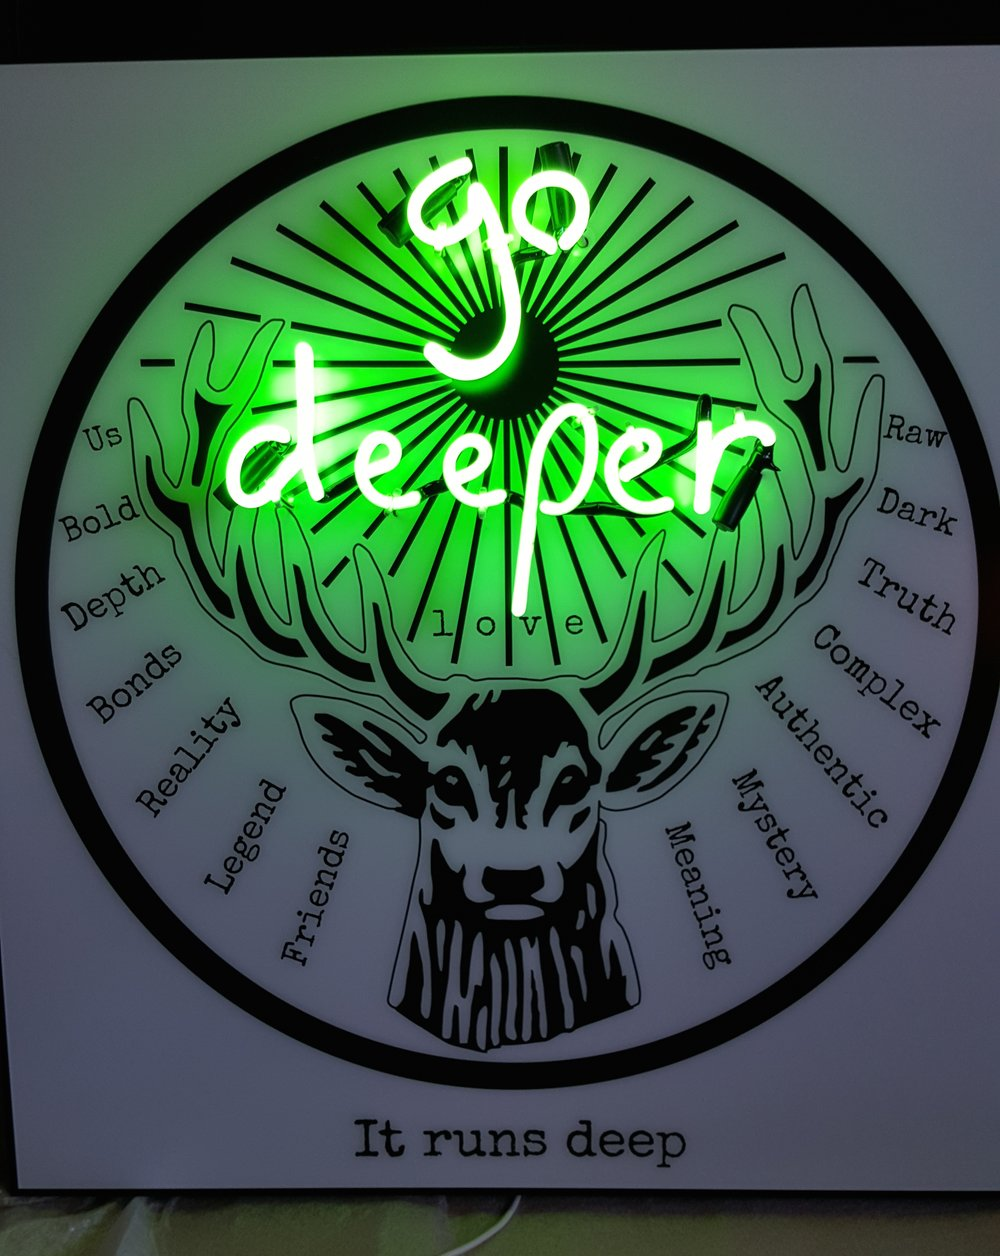 Go Deeper - Jagermeister commission